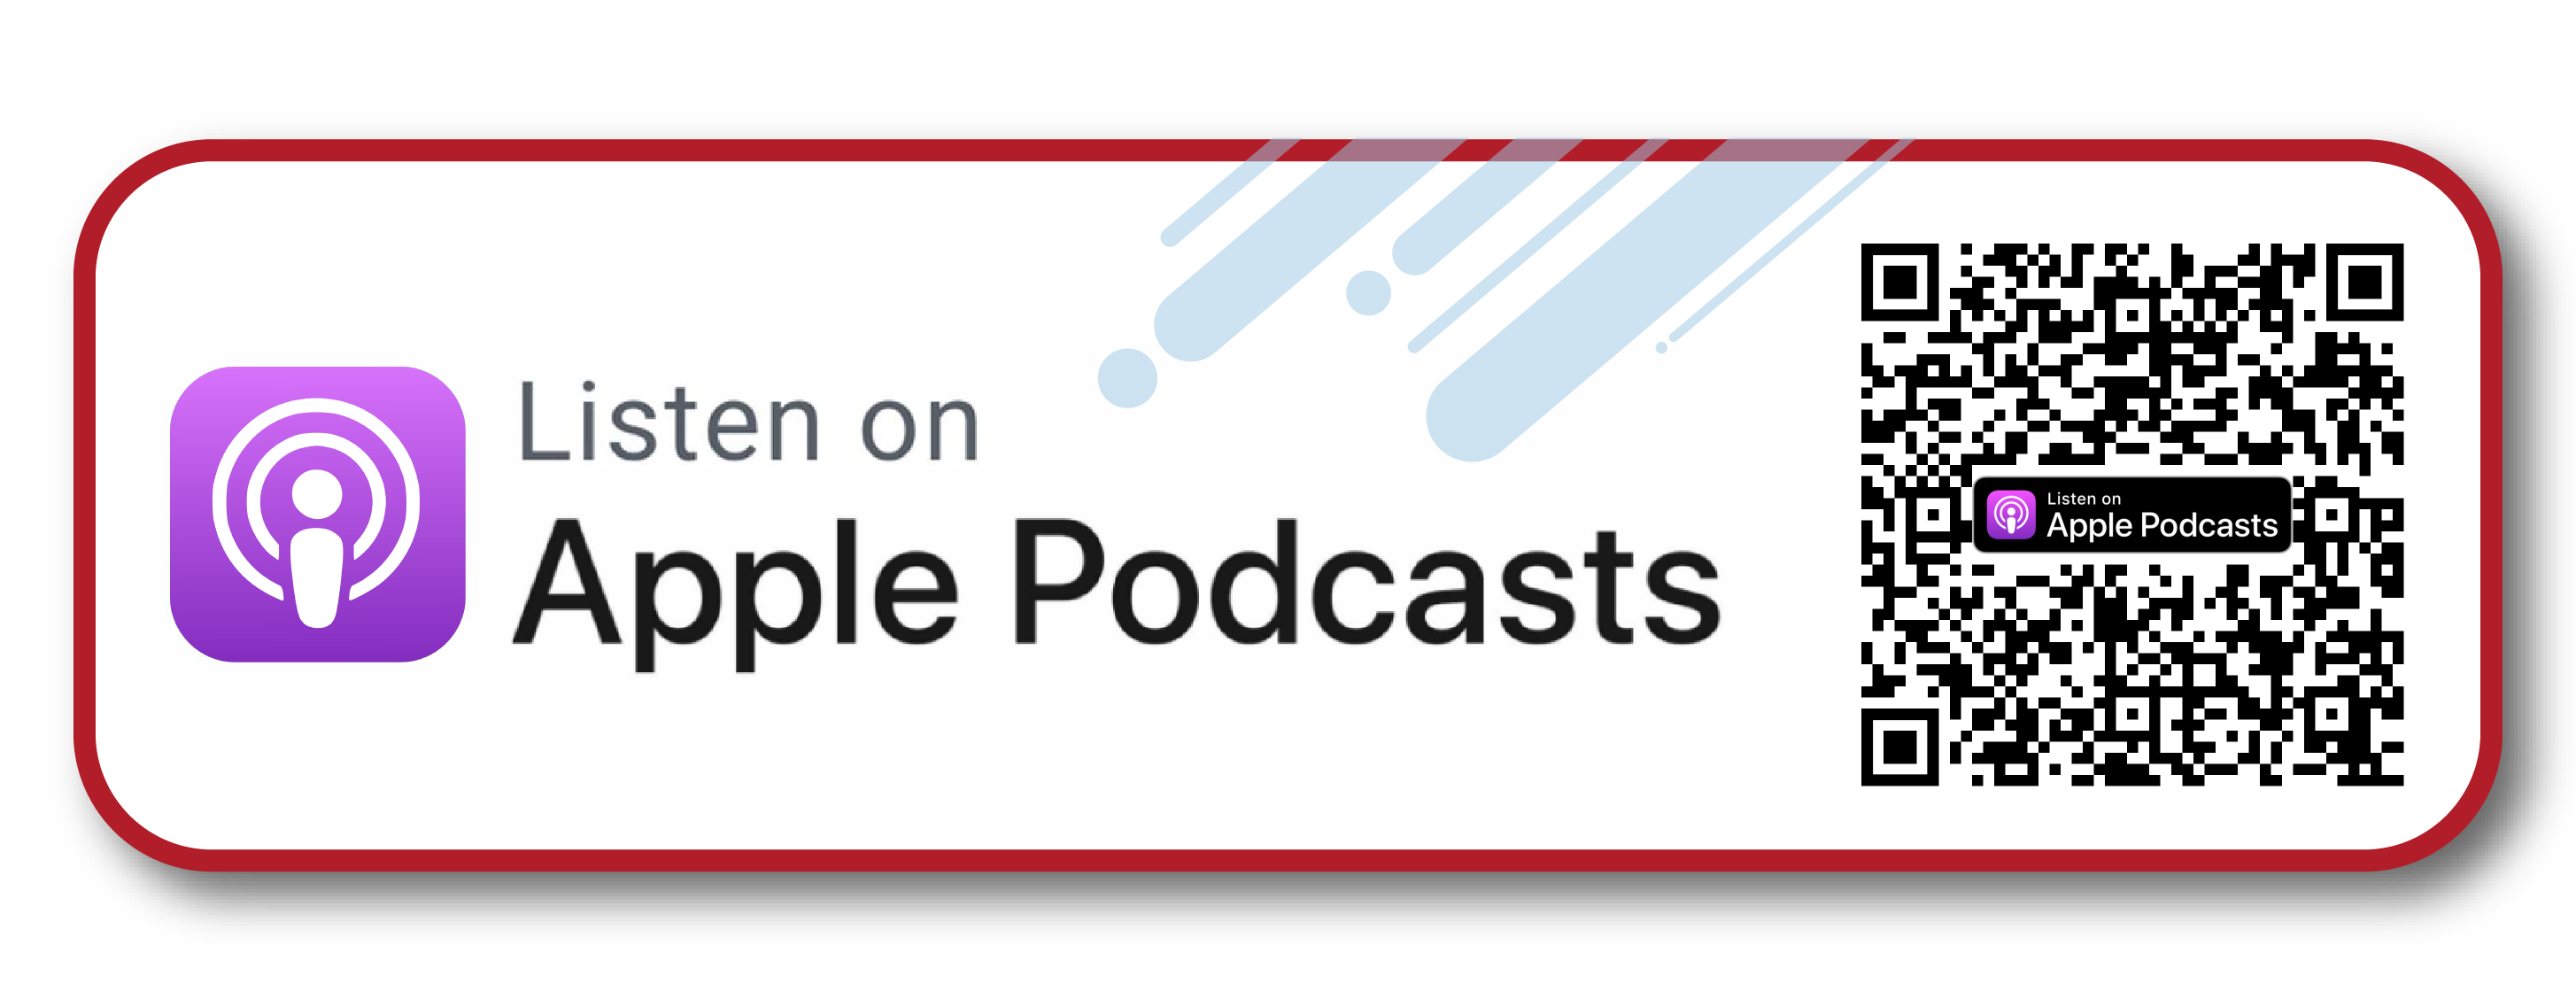 Apple_Podcasts_BT